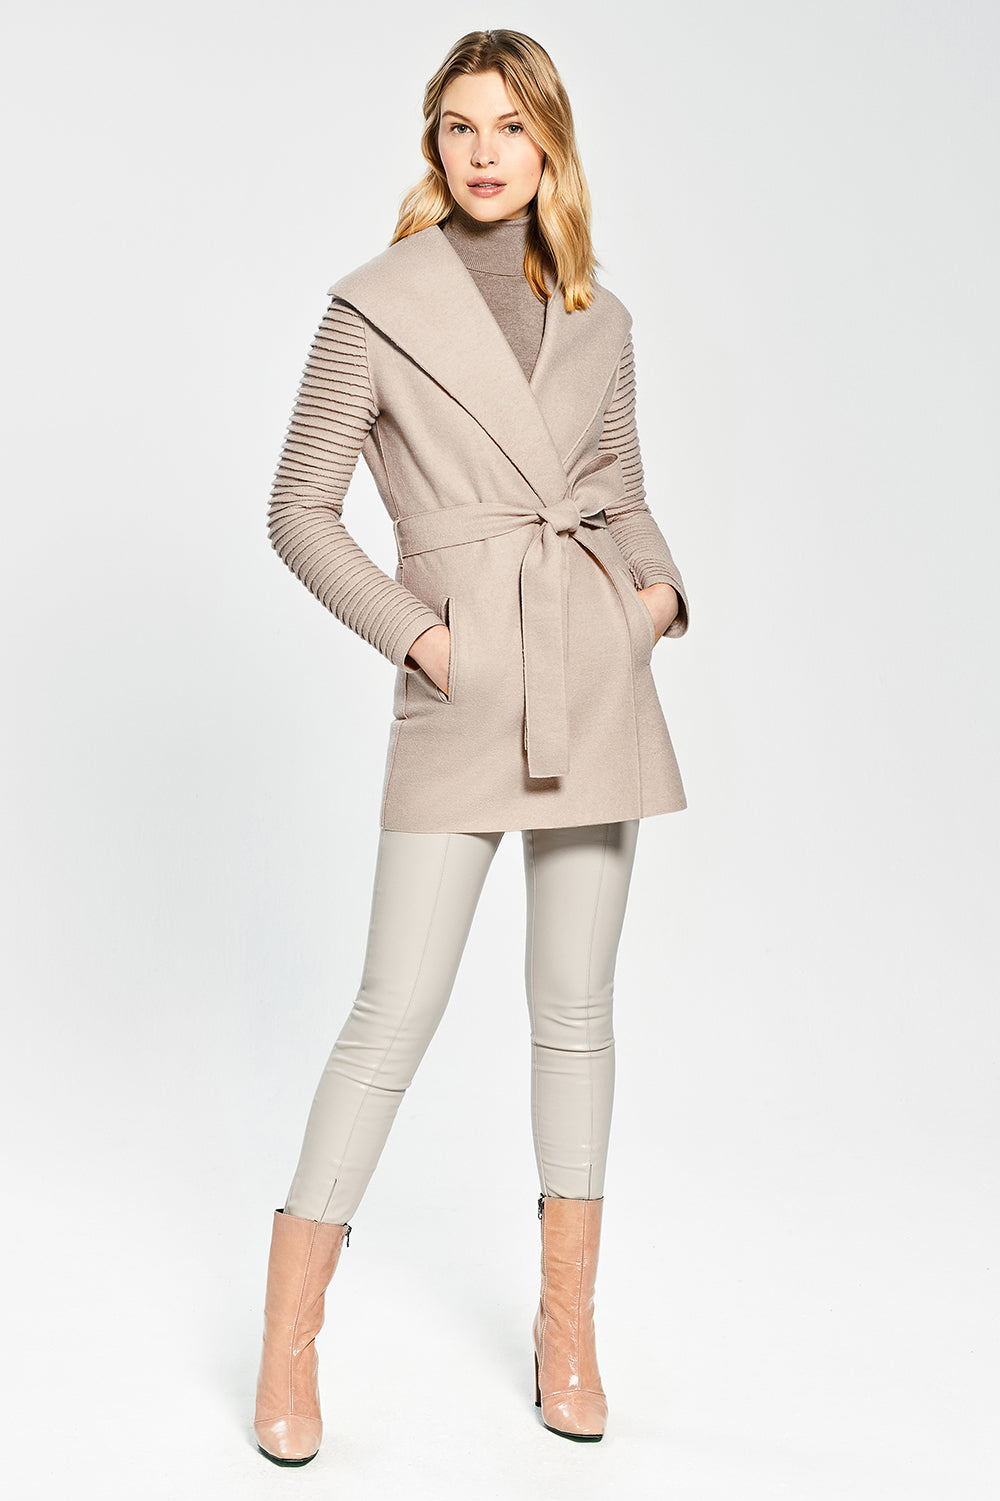 Sentaler Wrap Coat with Ribbed Sleeves featured in Superfine Alpaca and available in Chamois. Seen from front.